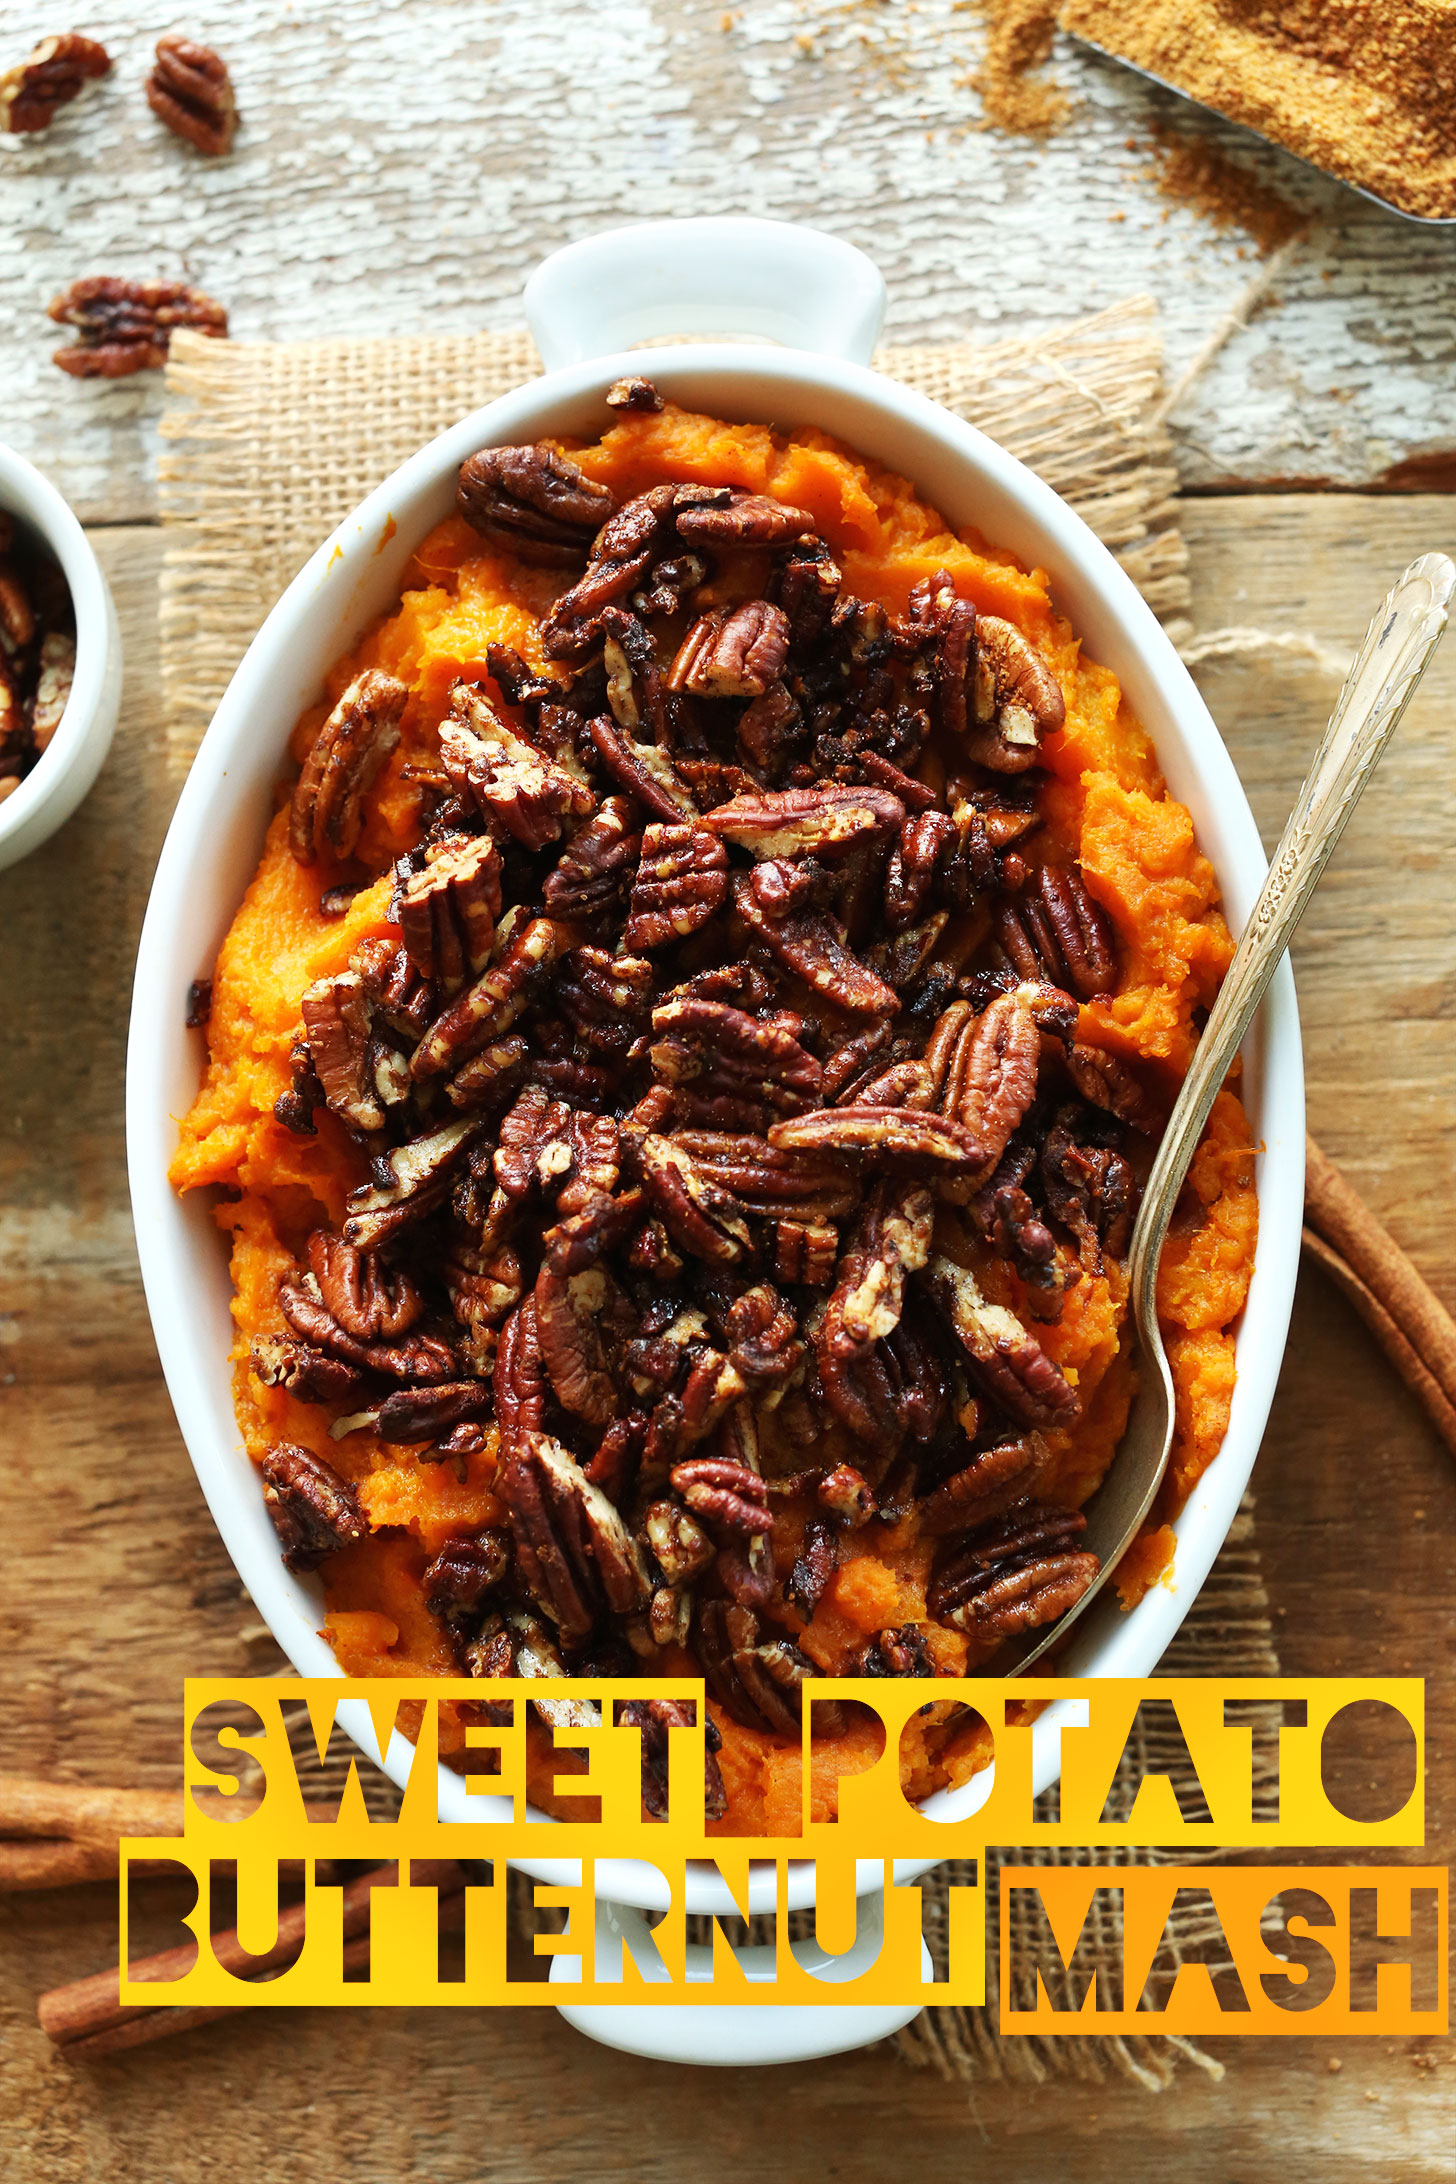 AMAZING Butternut Squash Sweet Potato Mash with Maple Cinnamon Pecans | Perfect for fall and Thanksgiving! #vegan #glutenfree #fall #thanksgiving #healthy #recipe #minimalistbaker